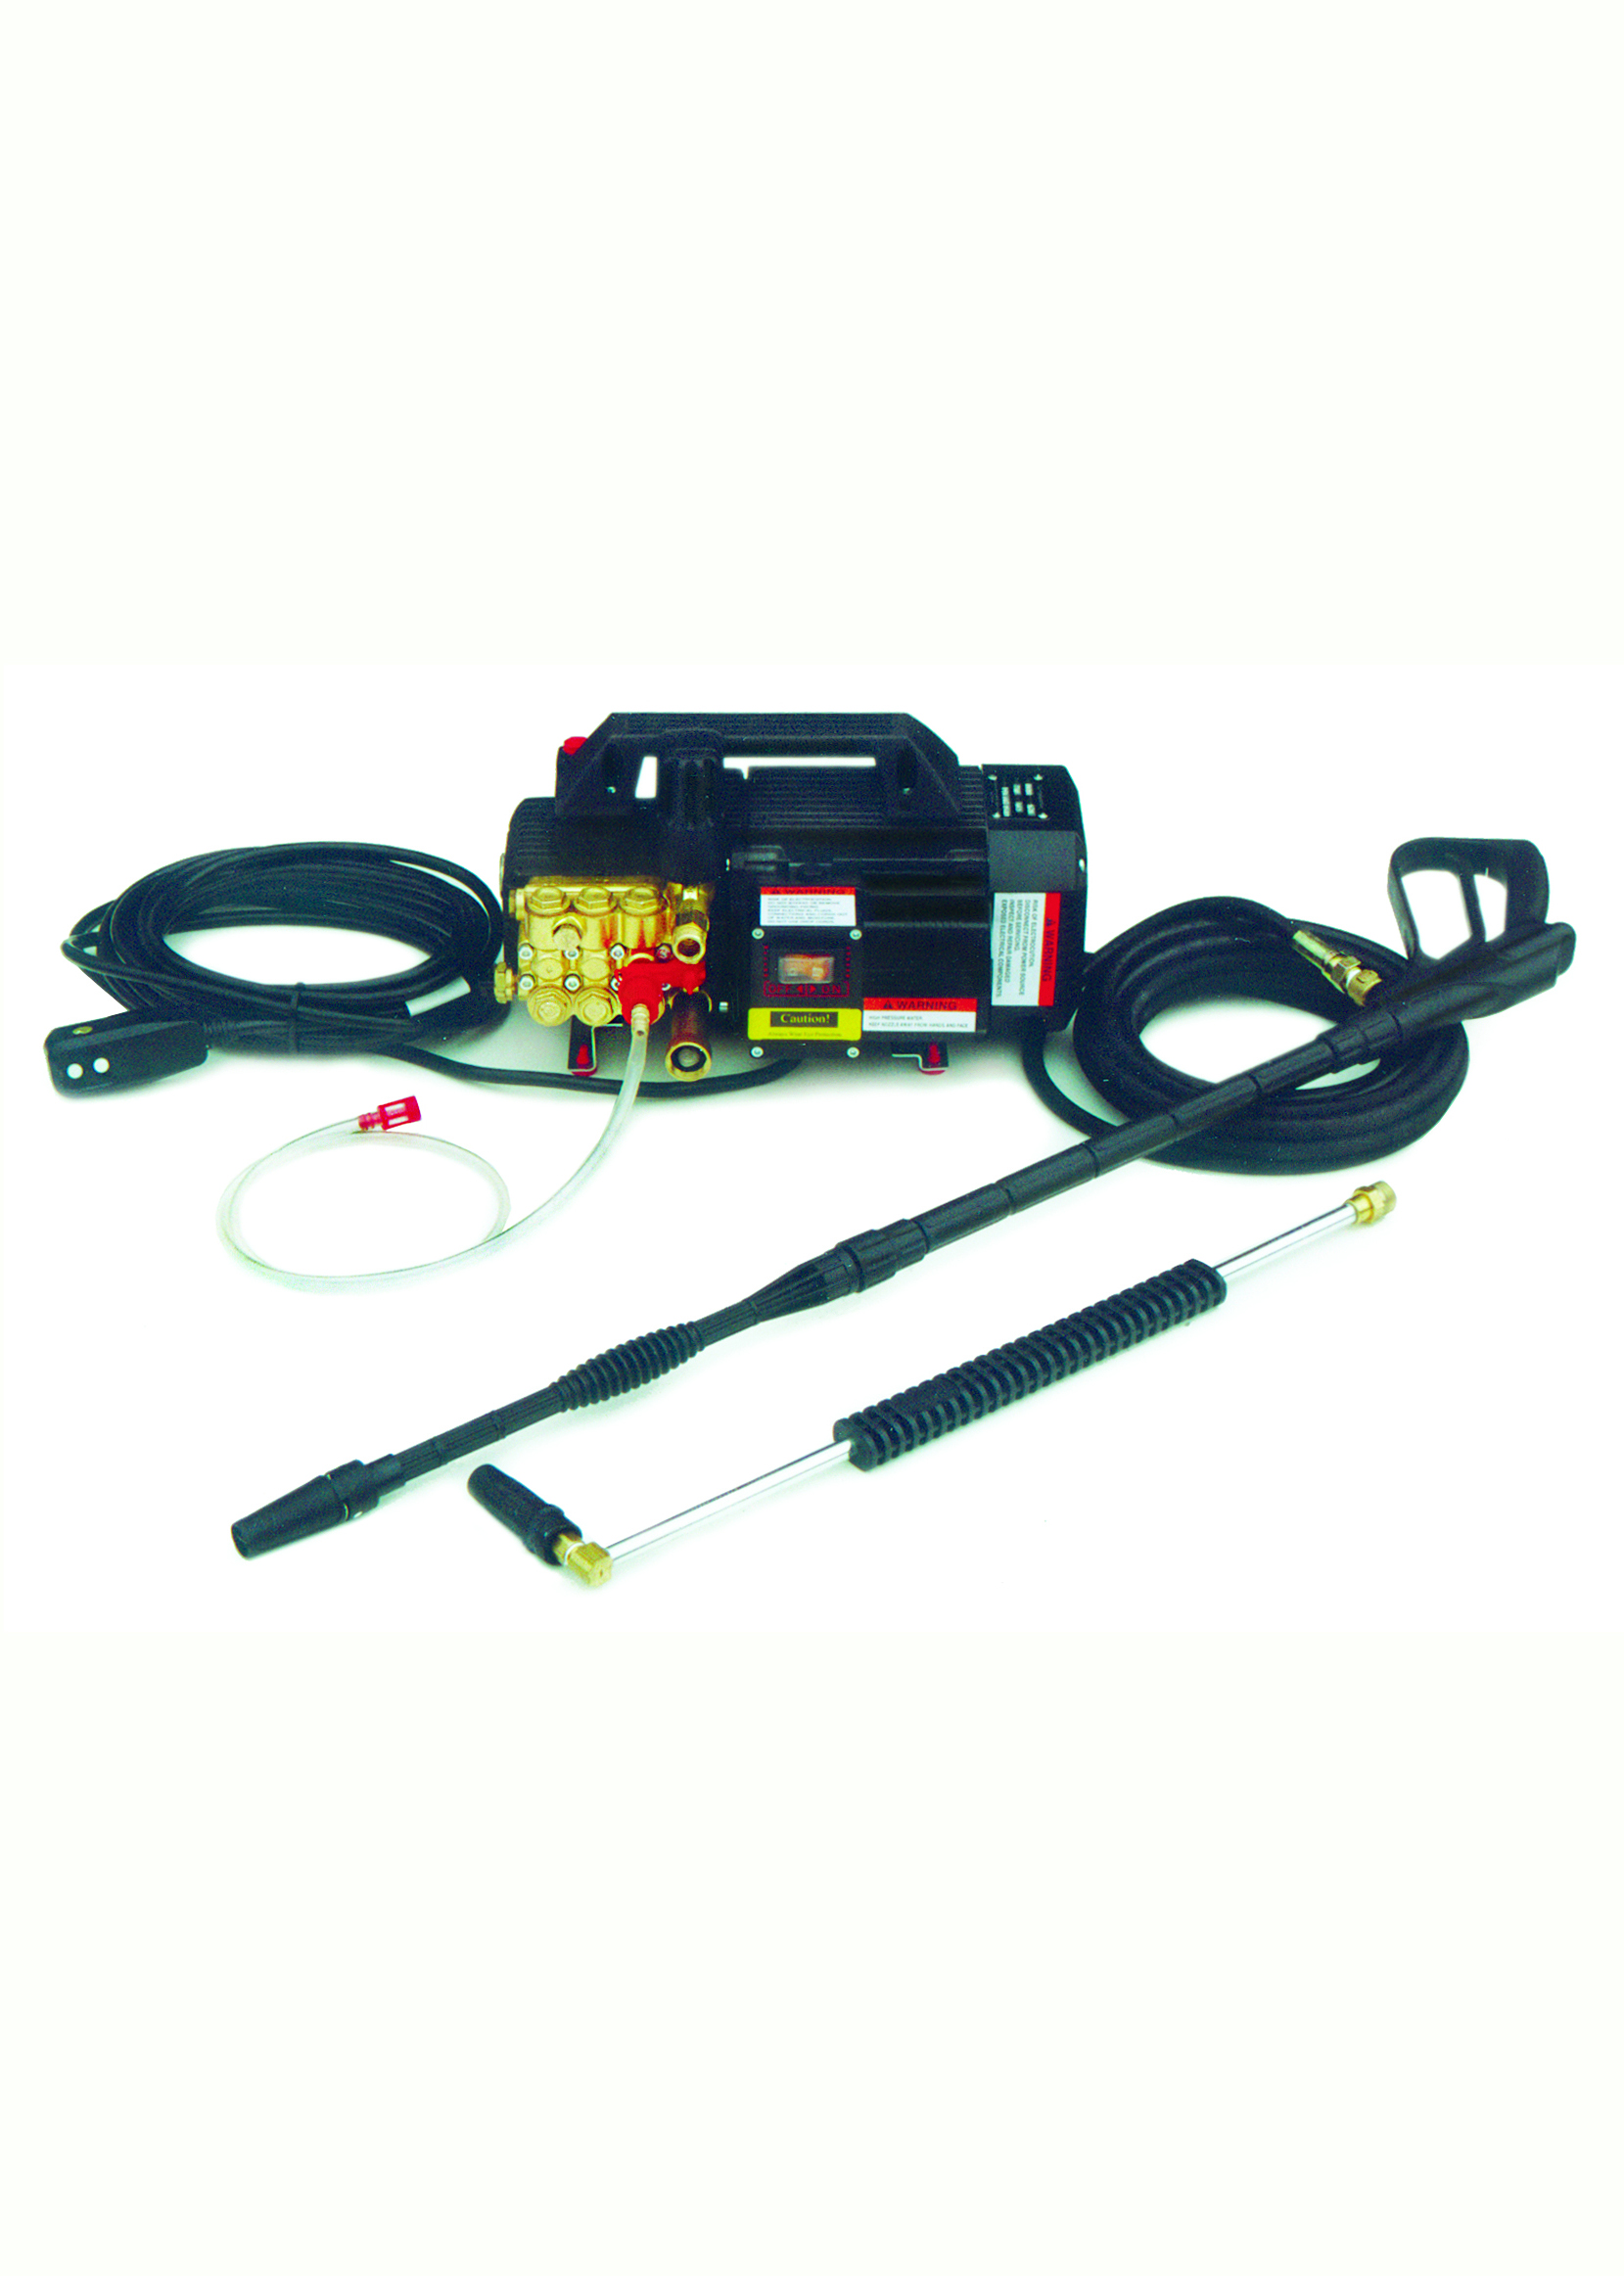 epw-1500-compact-electric-pressure-washer